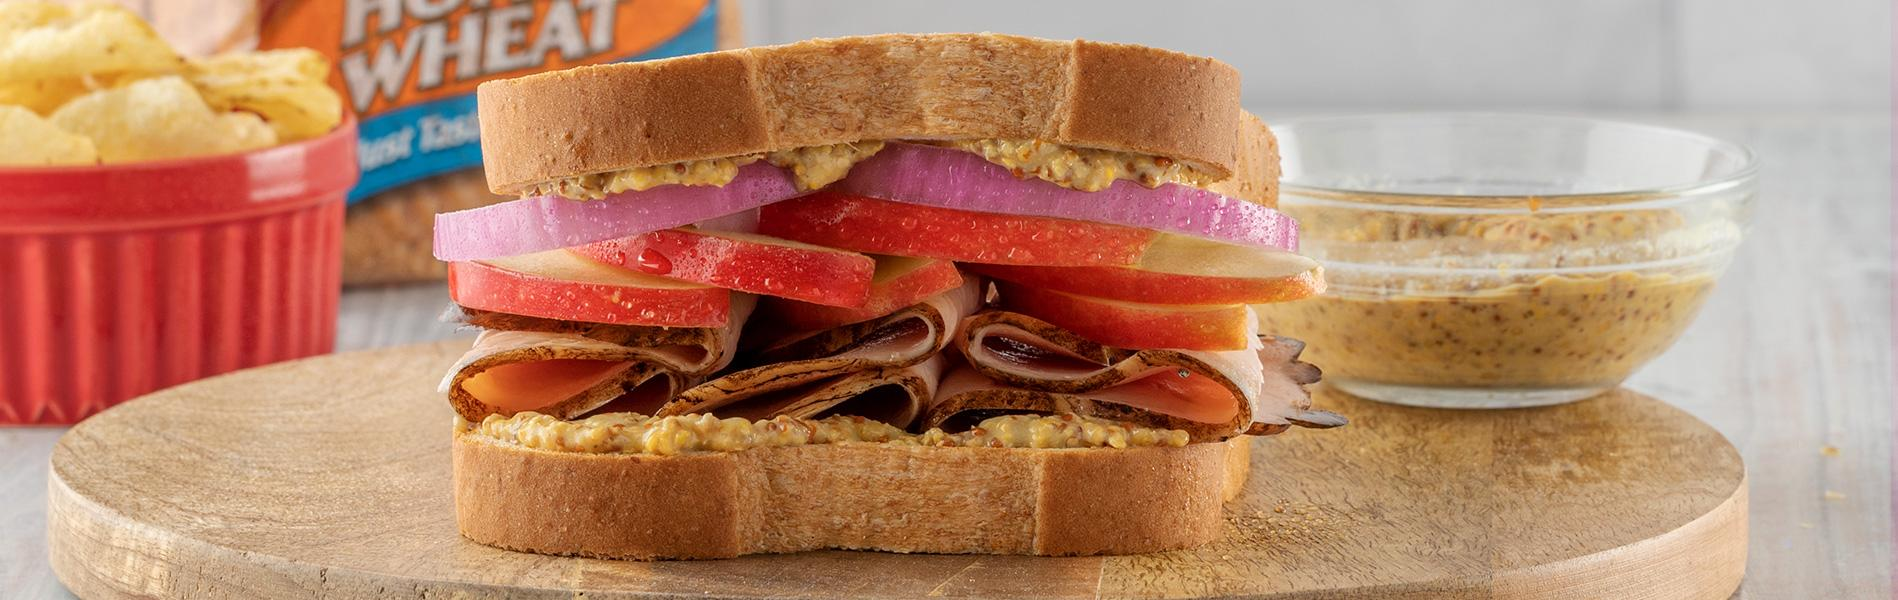 Sandwich with ground mustard, red onion, apples and turkey